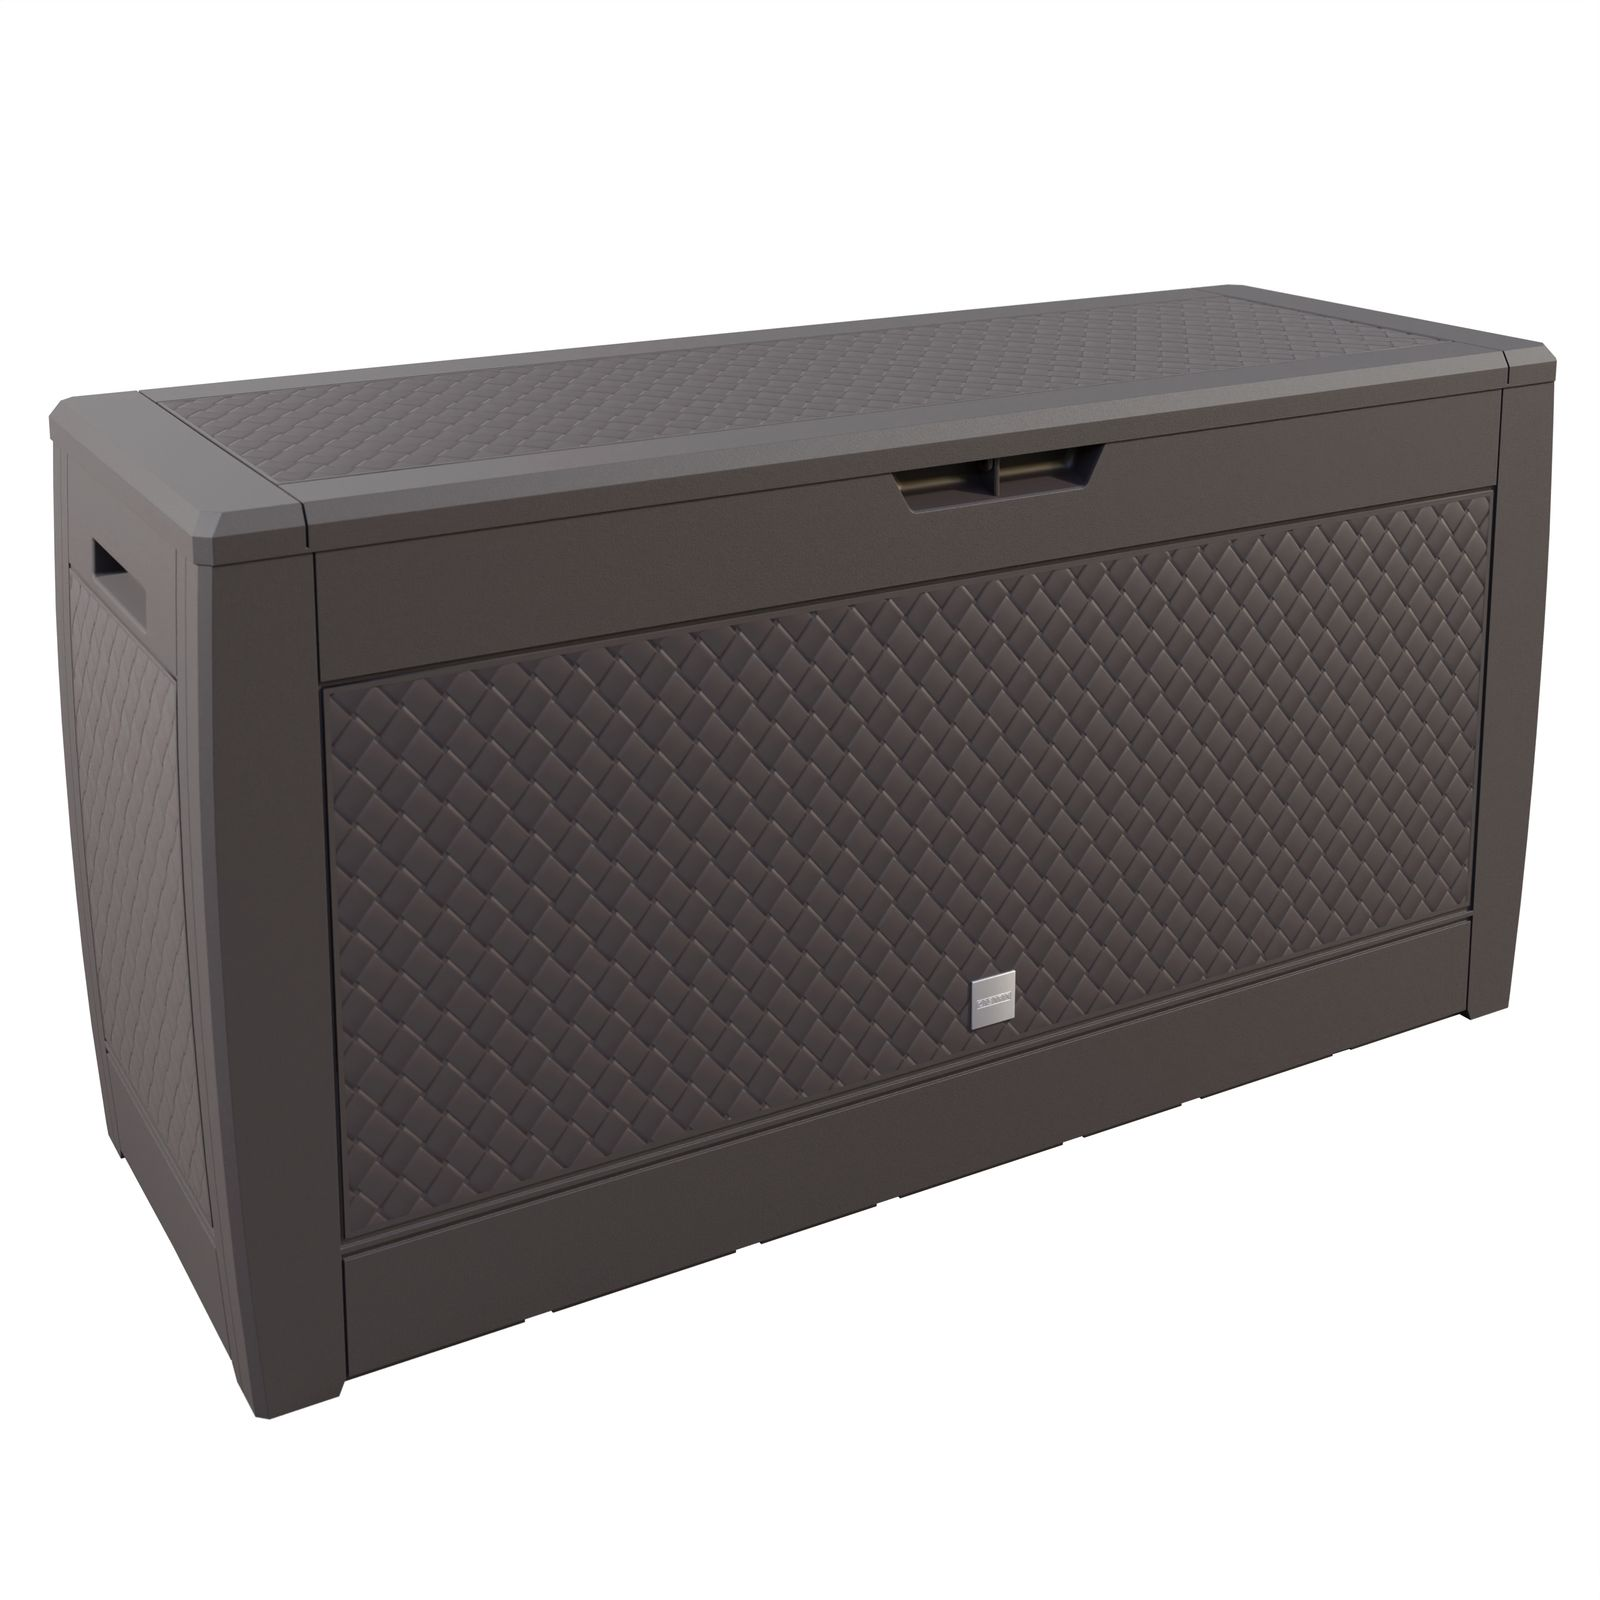 auflagenbox truhe box poly rattan gartenbox gartentruhe kissenbox kiste auflage ebay. Black Bedroom Furniture Sets. Home Design Ideas